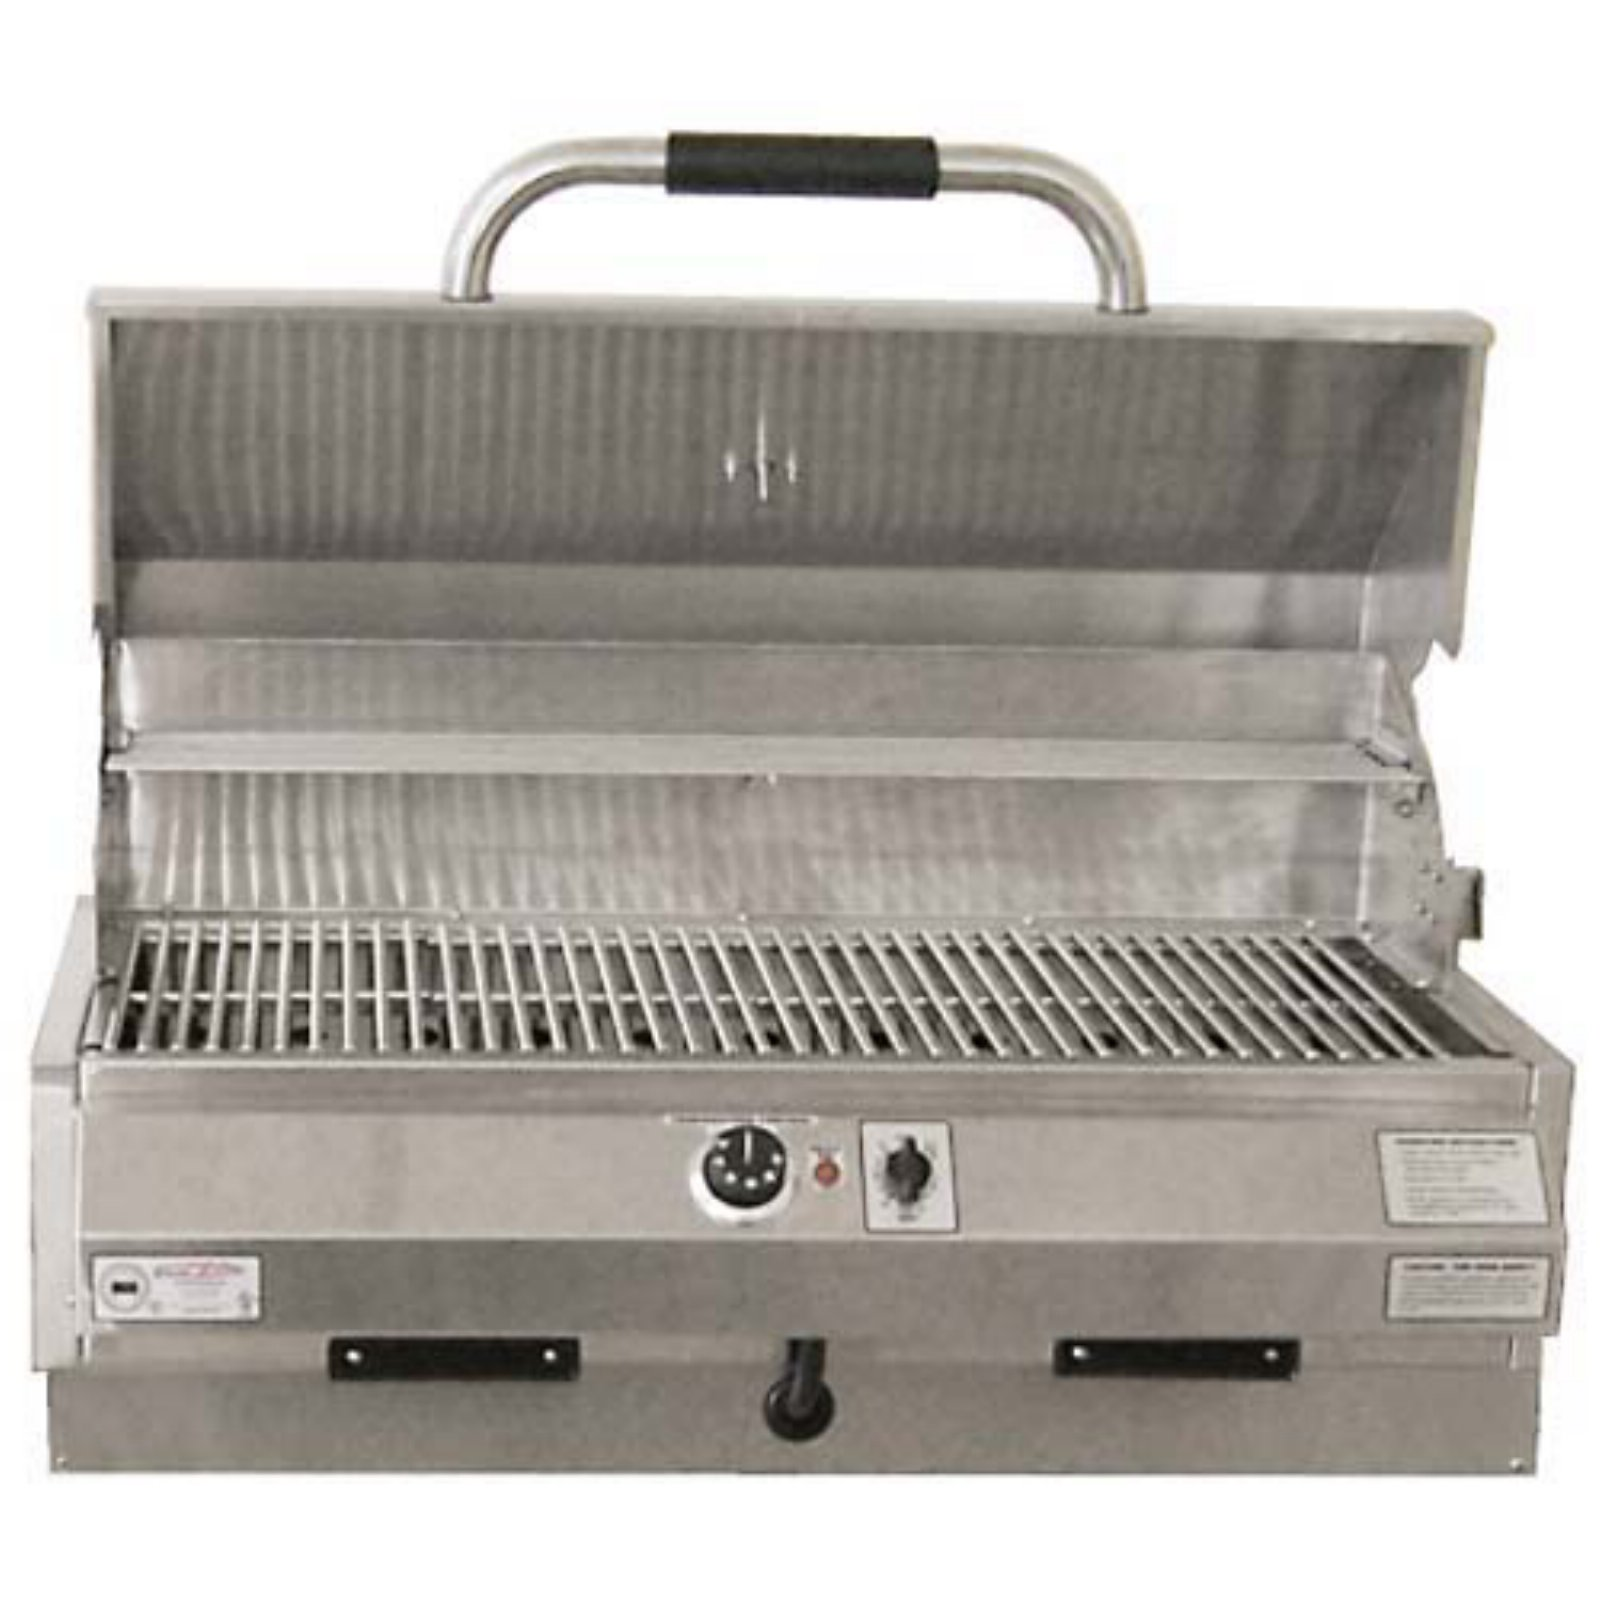 Electri-Chef Island Marine 32 in. Built-In Electric Grill - Single Burner